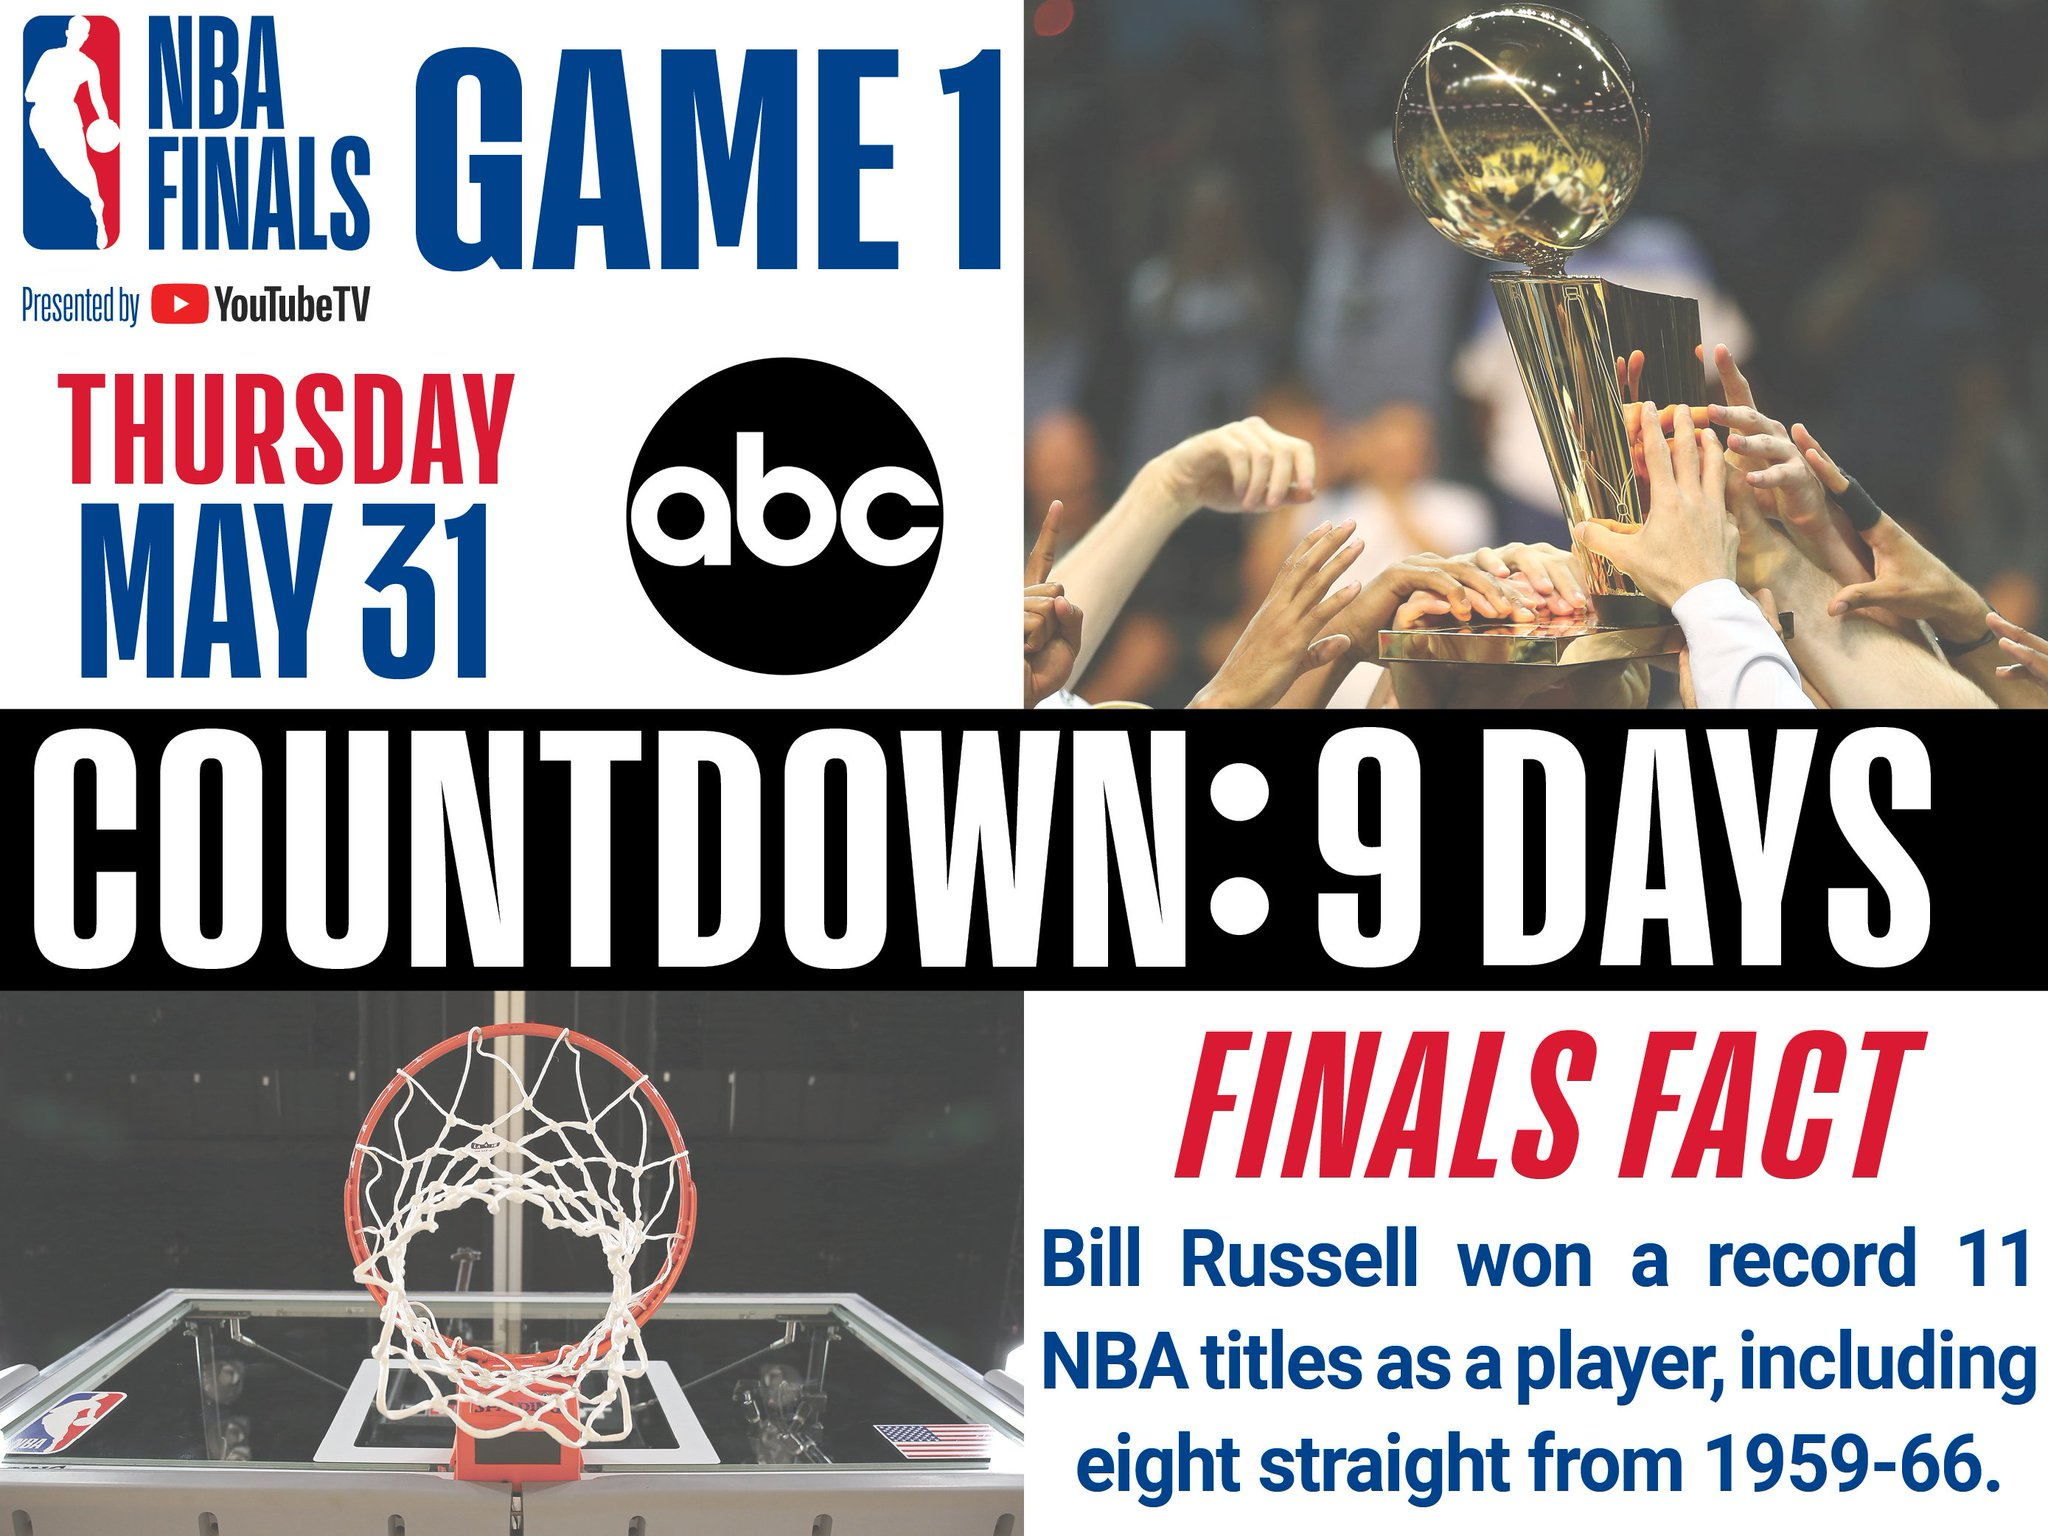 The 2018 #NBAFinals presented by @YouTubeTV tips off in 9 Days (5/31 #NBAonABC)! https://t.co/hFWtYhZlJs